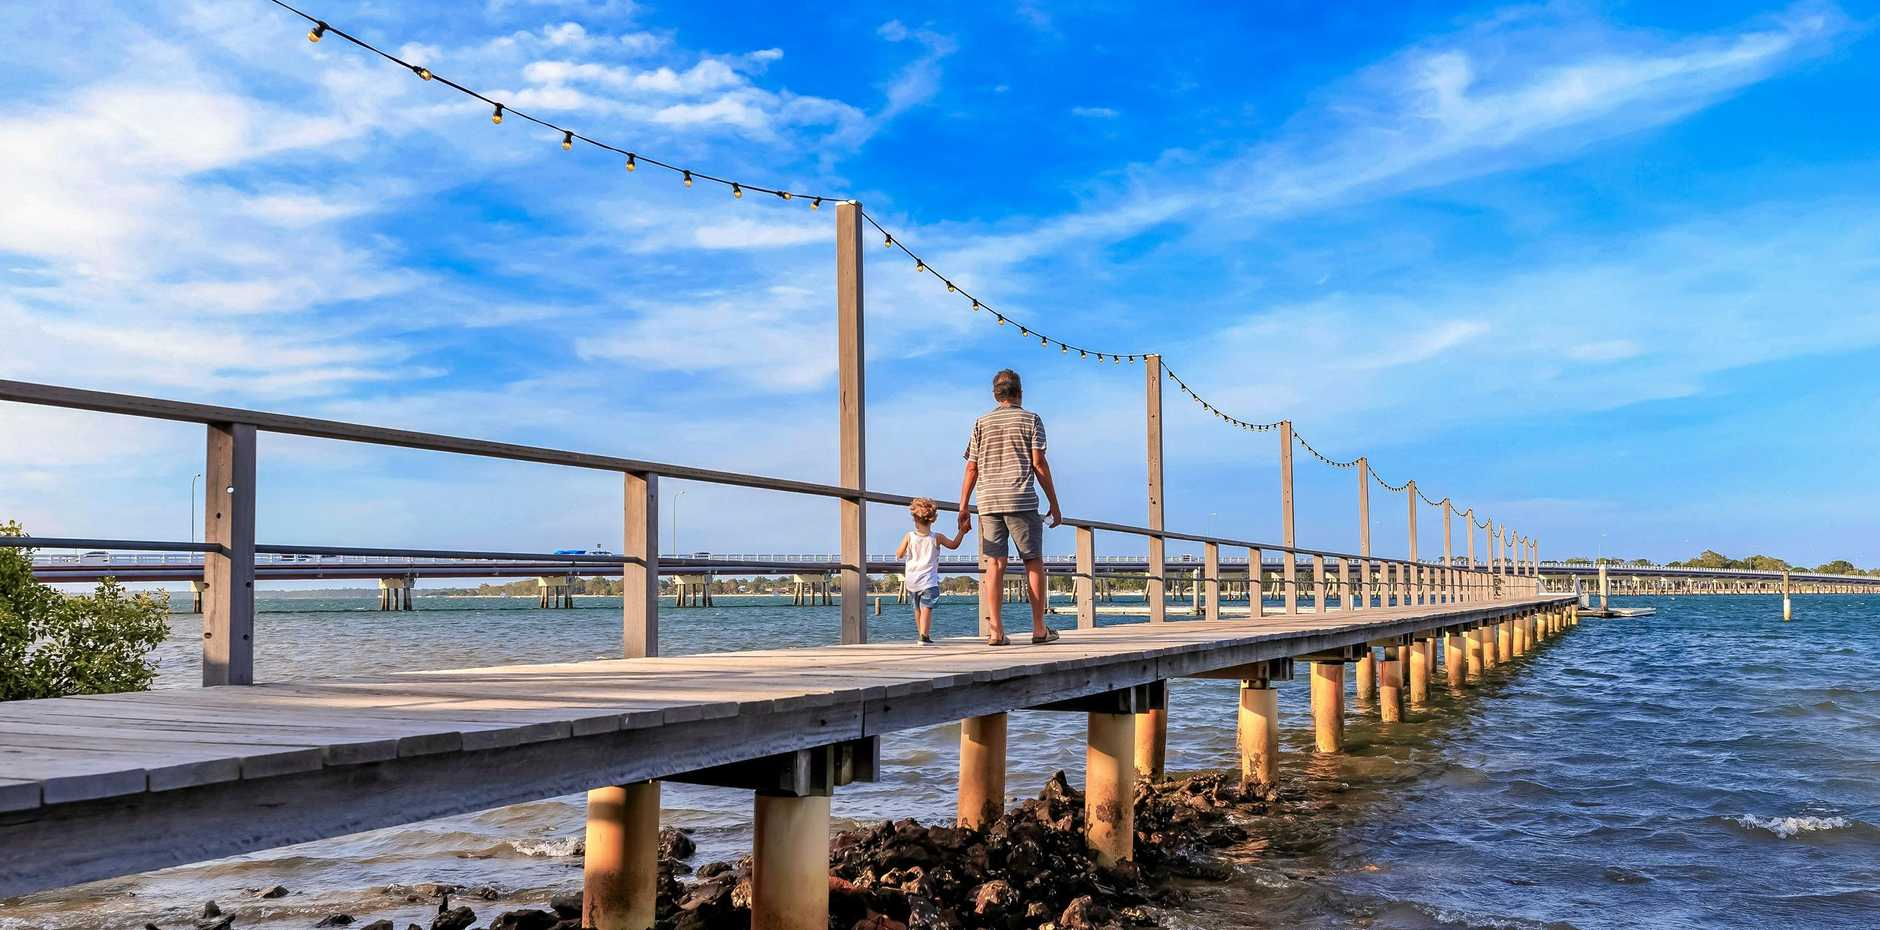 The jetty at Sandstone Point Hotel with views of Bribie Island.